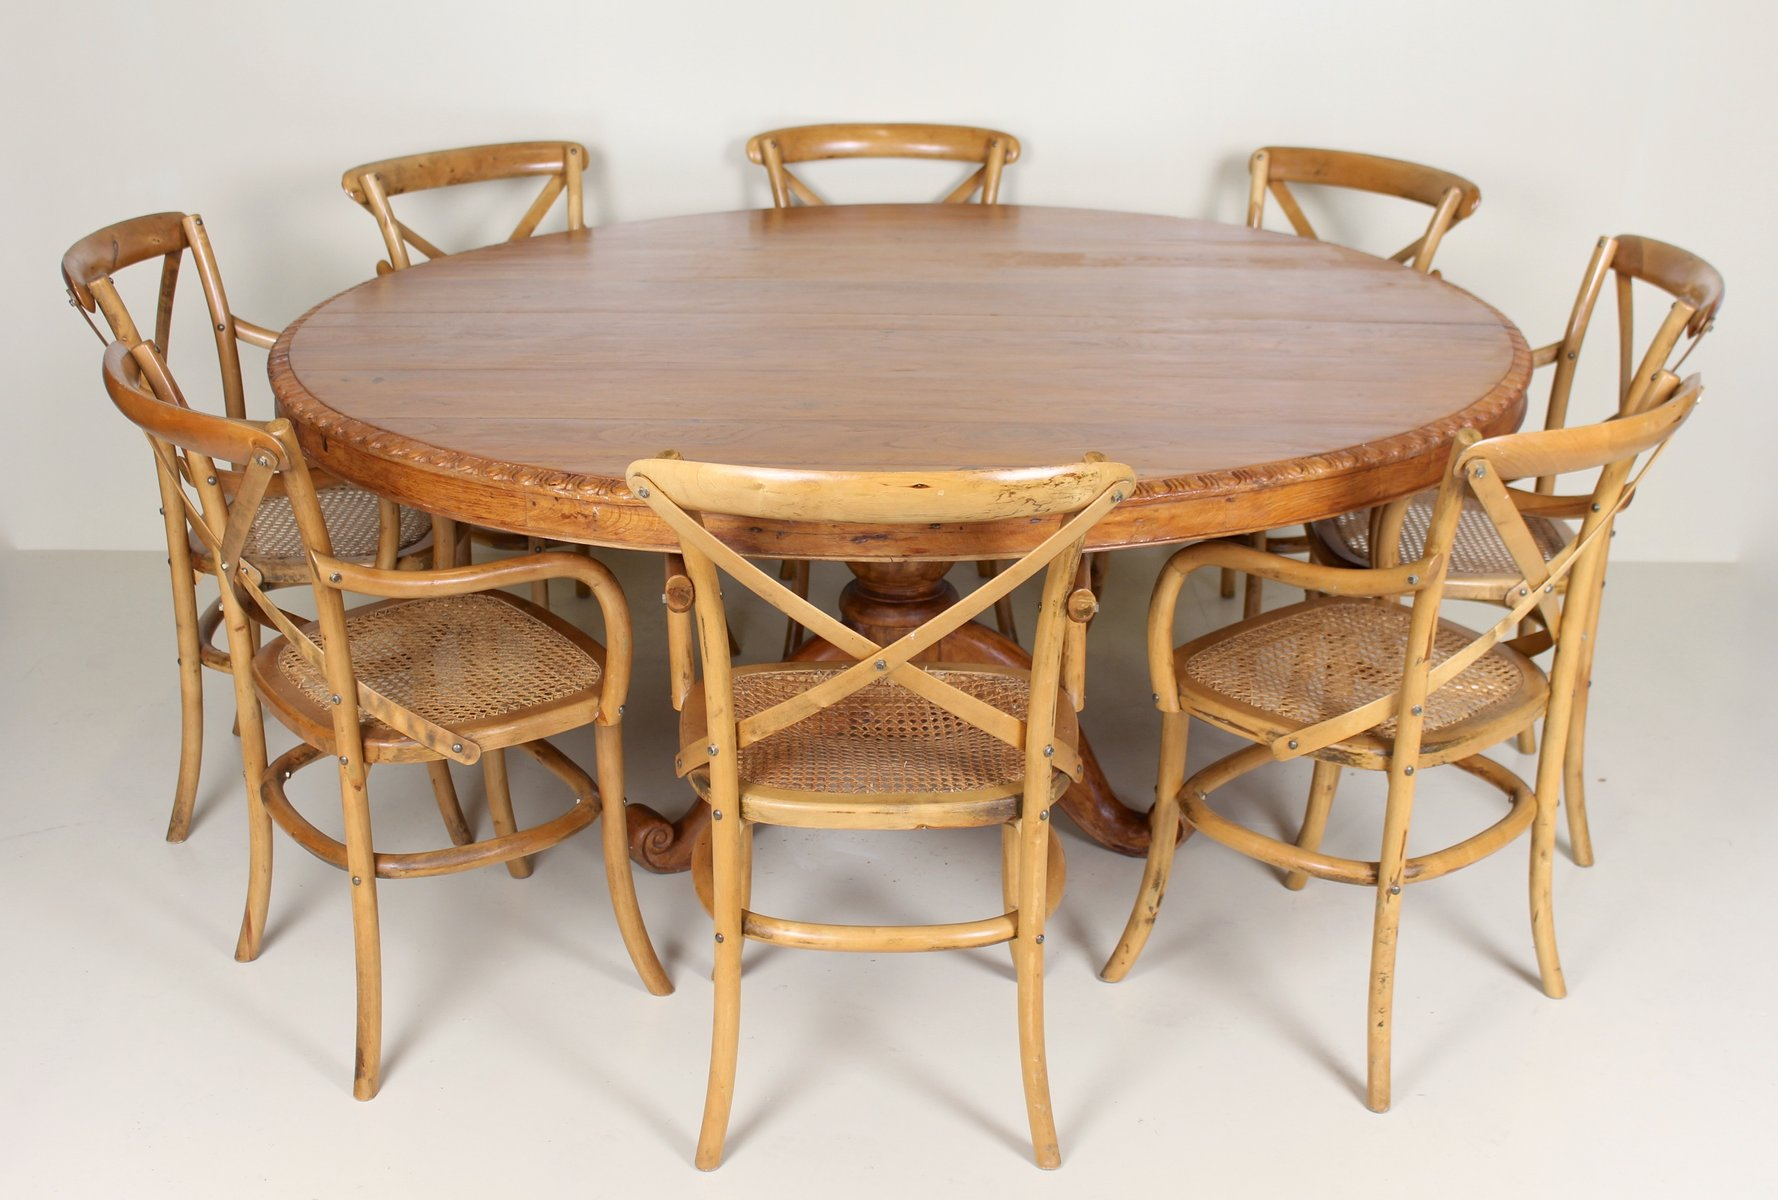 Vintage French Dining Table 8 Chairs